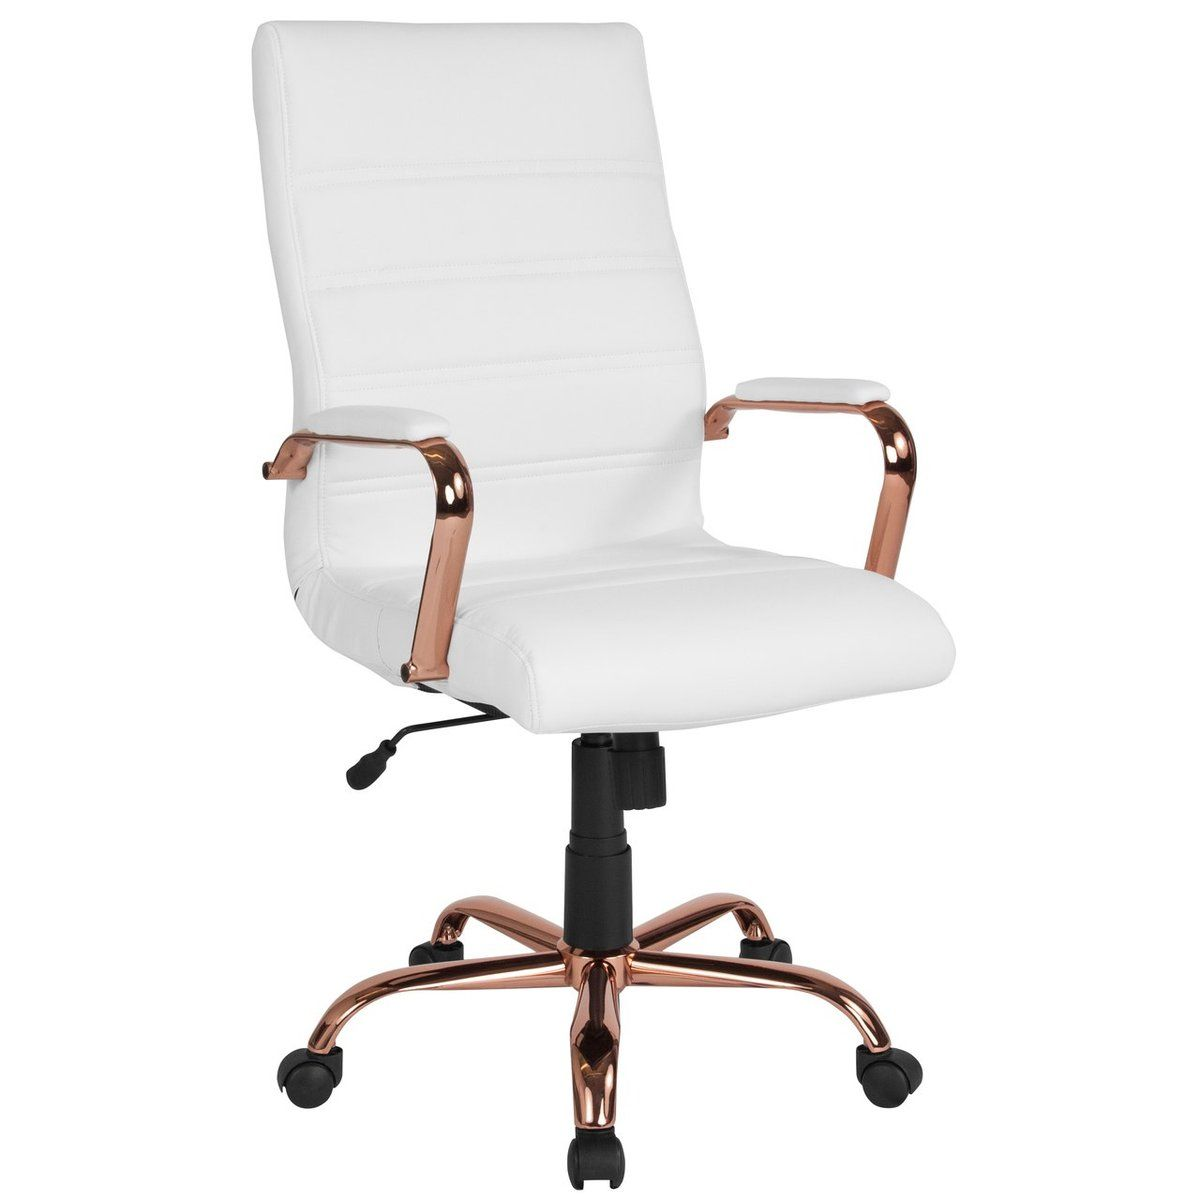 Rose Gold And White Office Chair Leather Office Chair White Office Chair Modern Office Chair